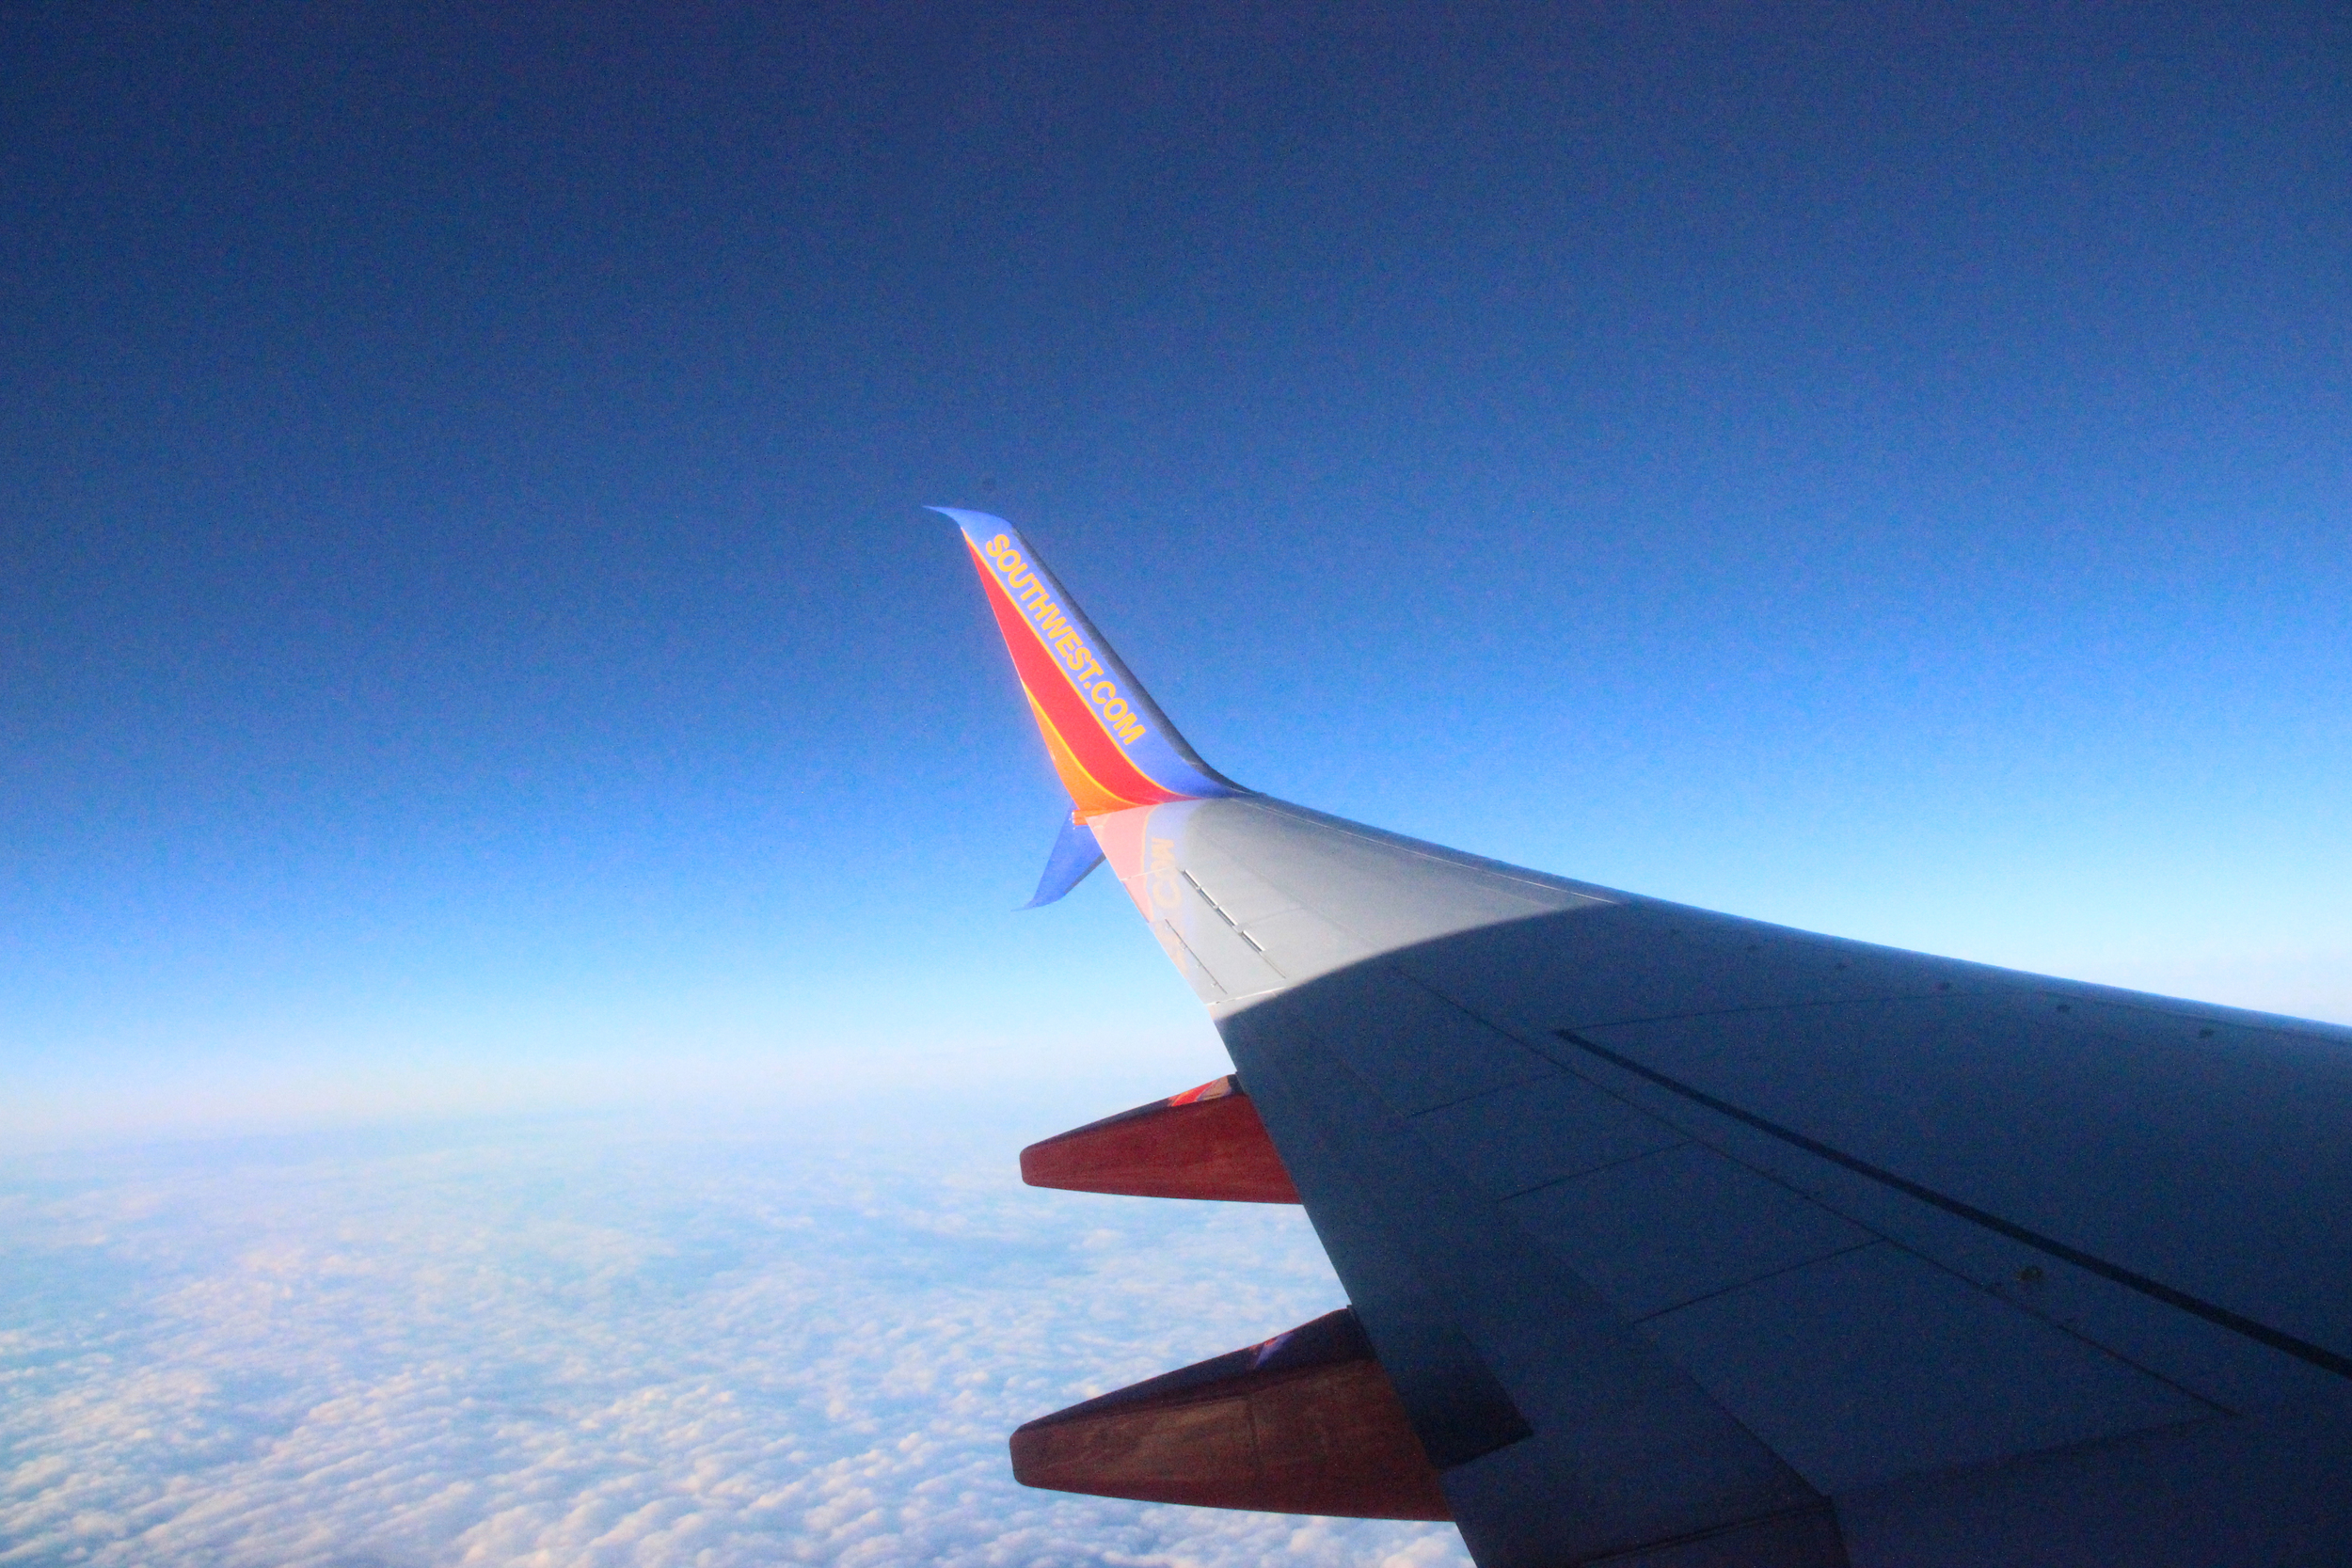 I am such a sucker for photos of airplane wings over cotton-candy clouds.